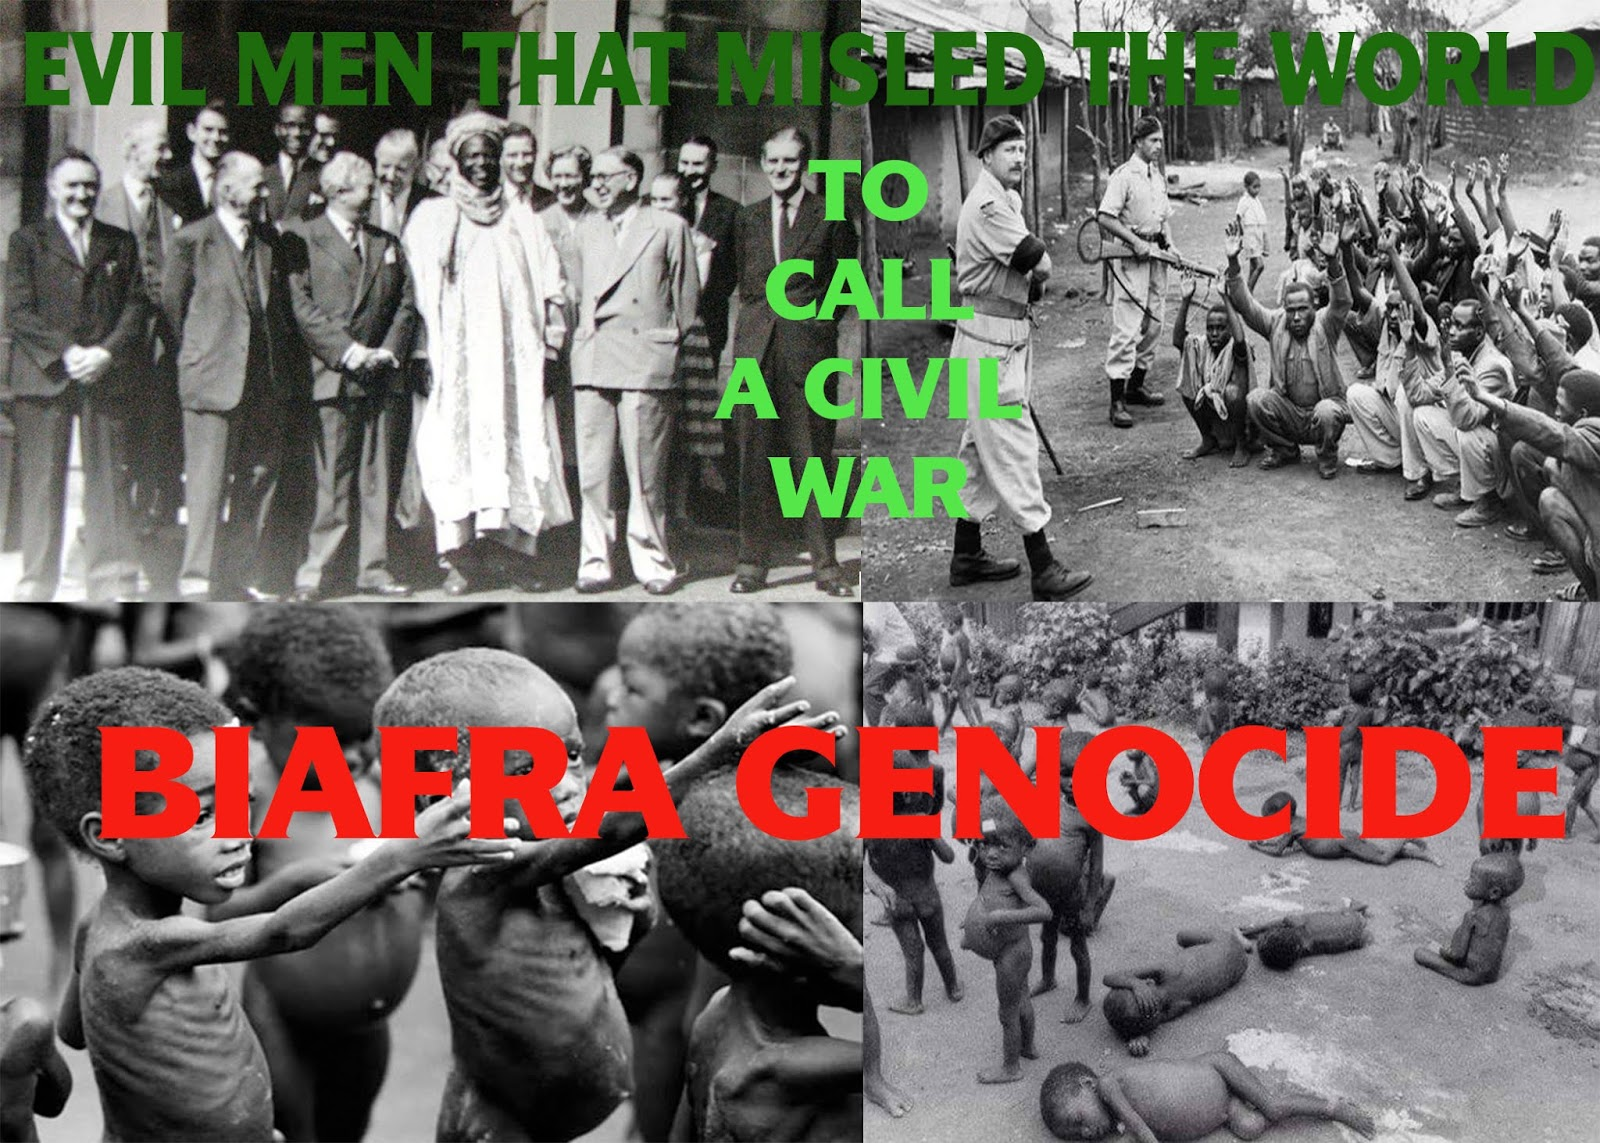 UNENDING GENOCIDE AGAINST THE INDIGENOUS PEOPLE OF BIAFRA BY